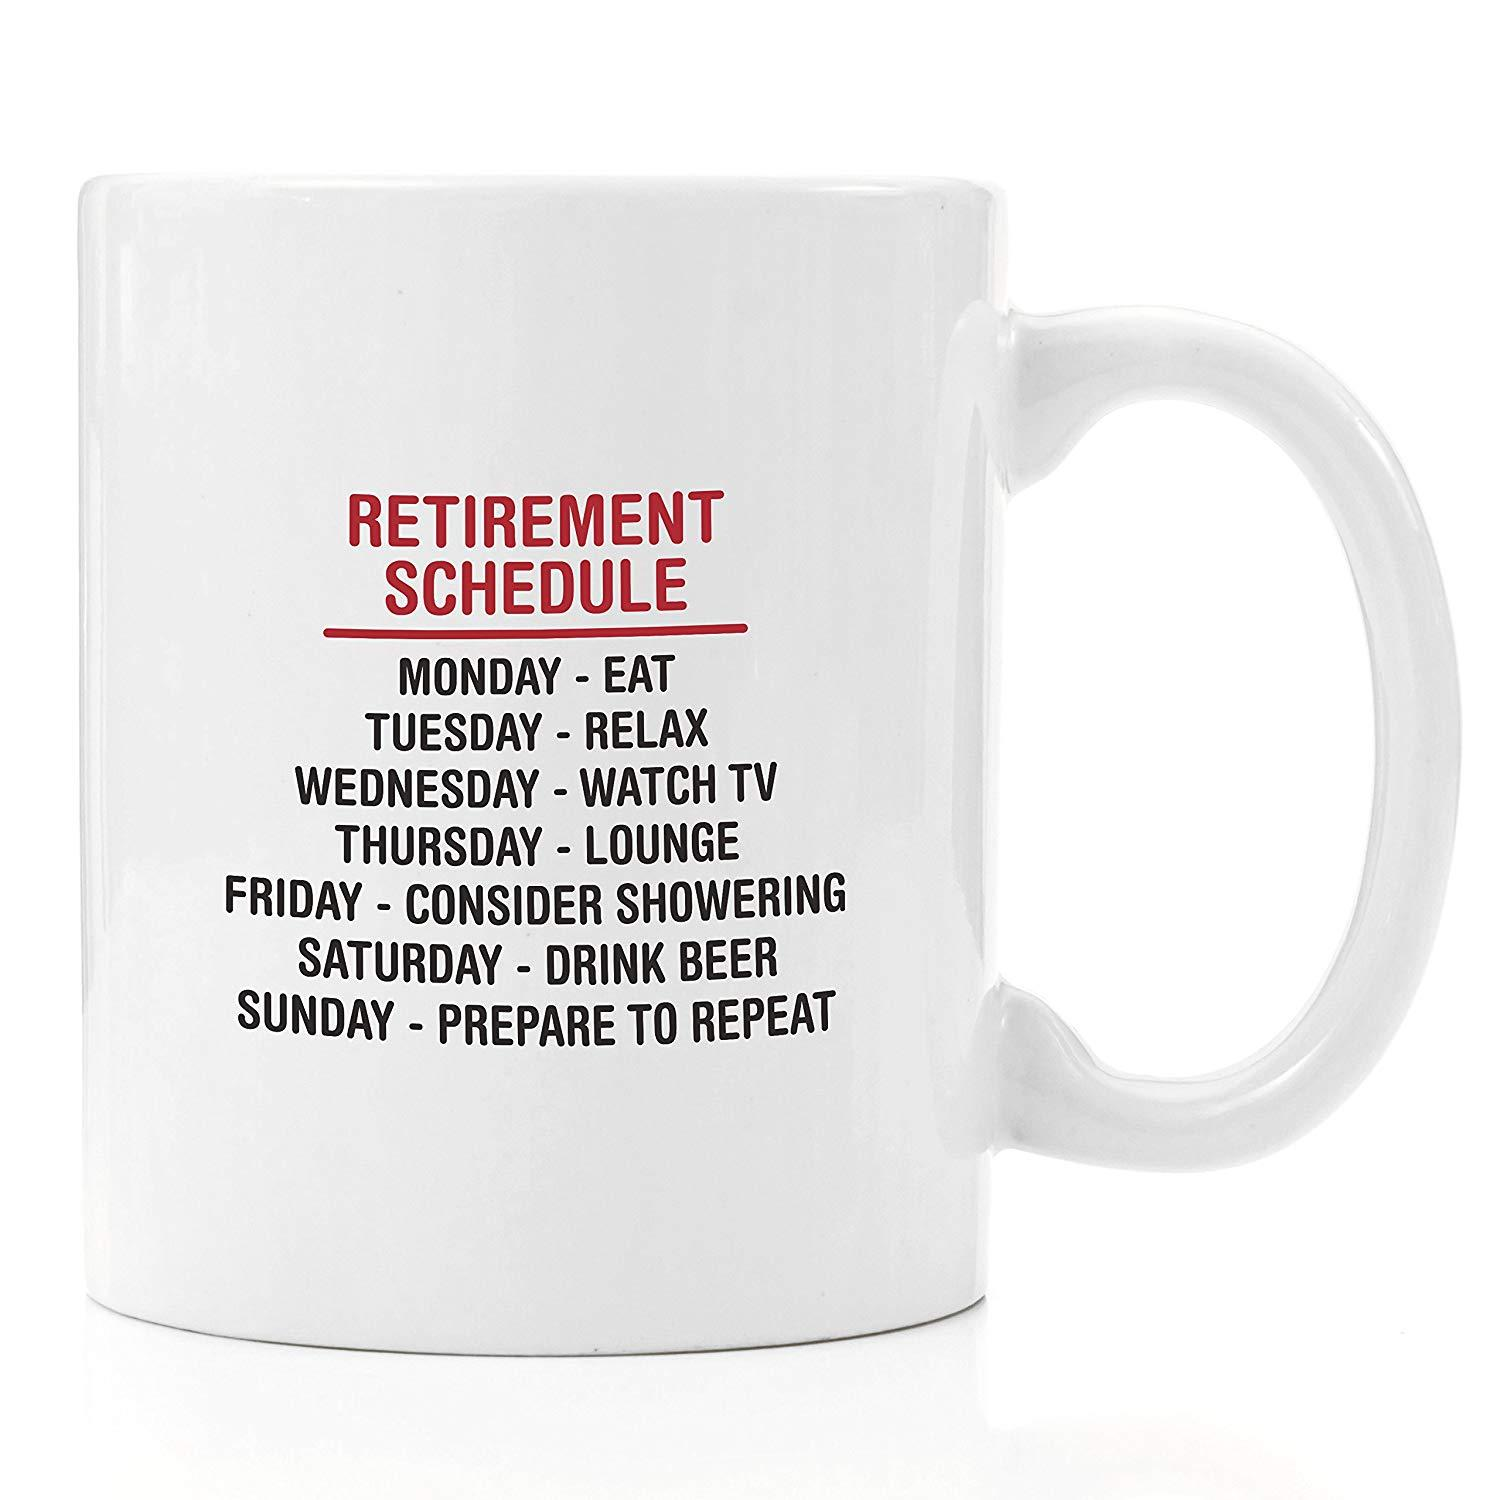 Retirement Schedule Coffee Mug 11 Oz Retirement Gag Gifts, Funny Retirement Gifts For Men, Women, Him, Her, Coworker Christmas Cups And Mugs Christmas Mugs ...